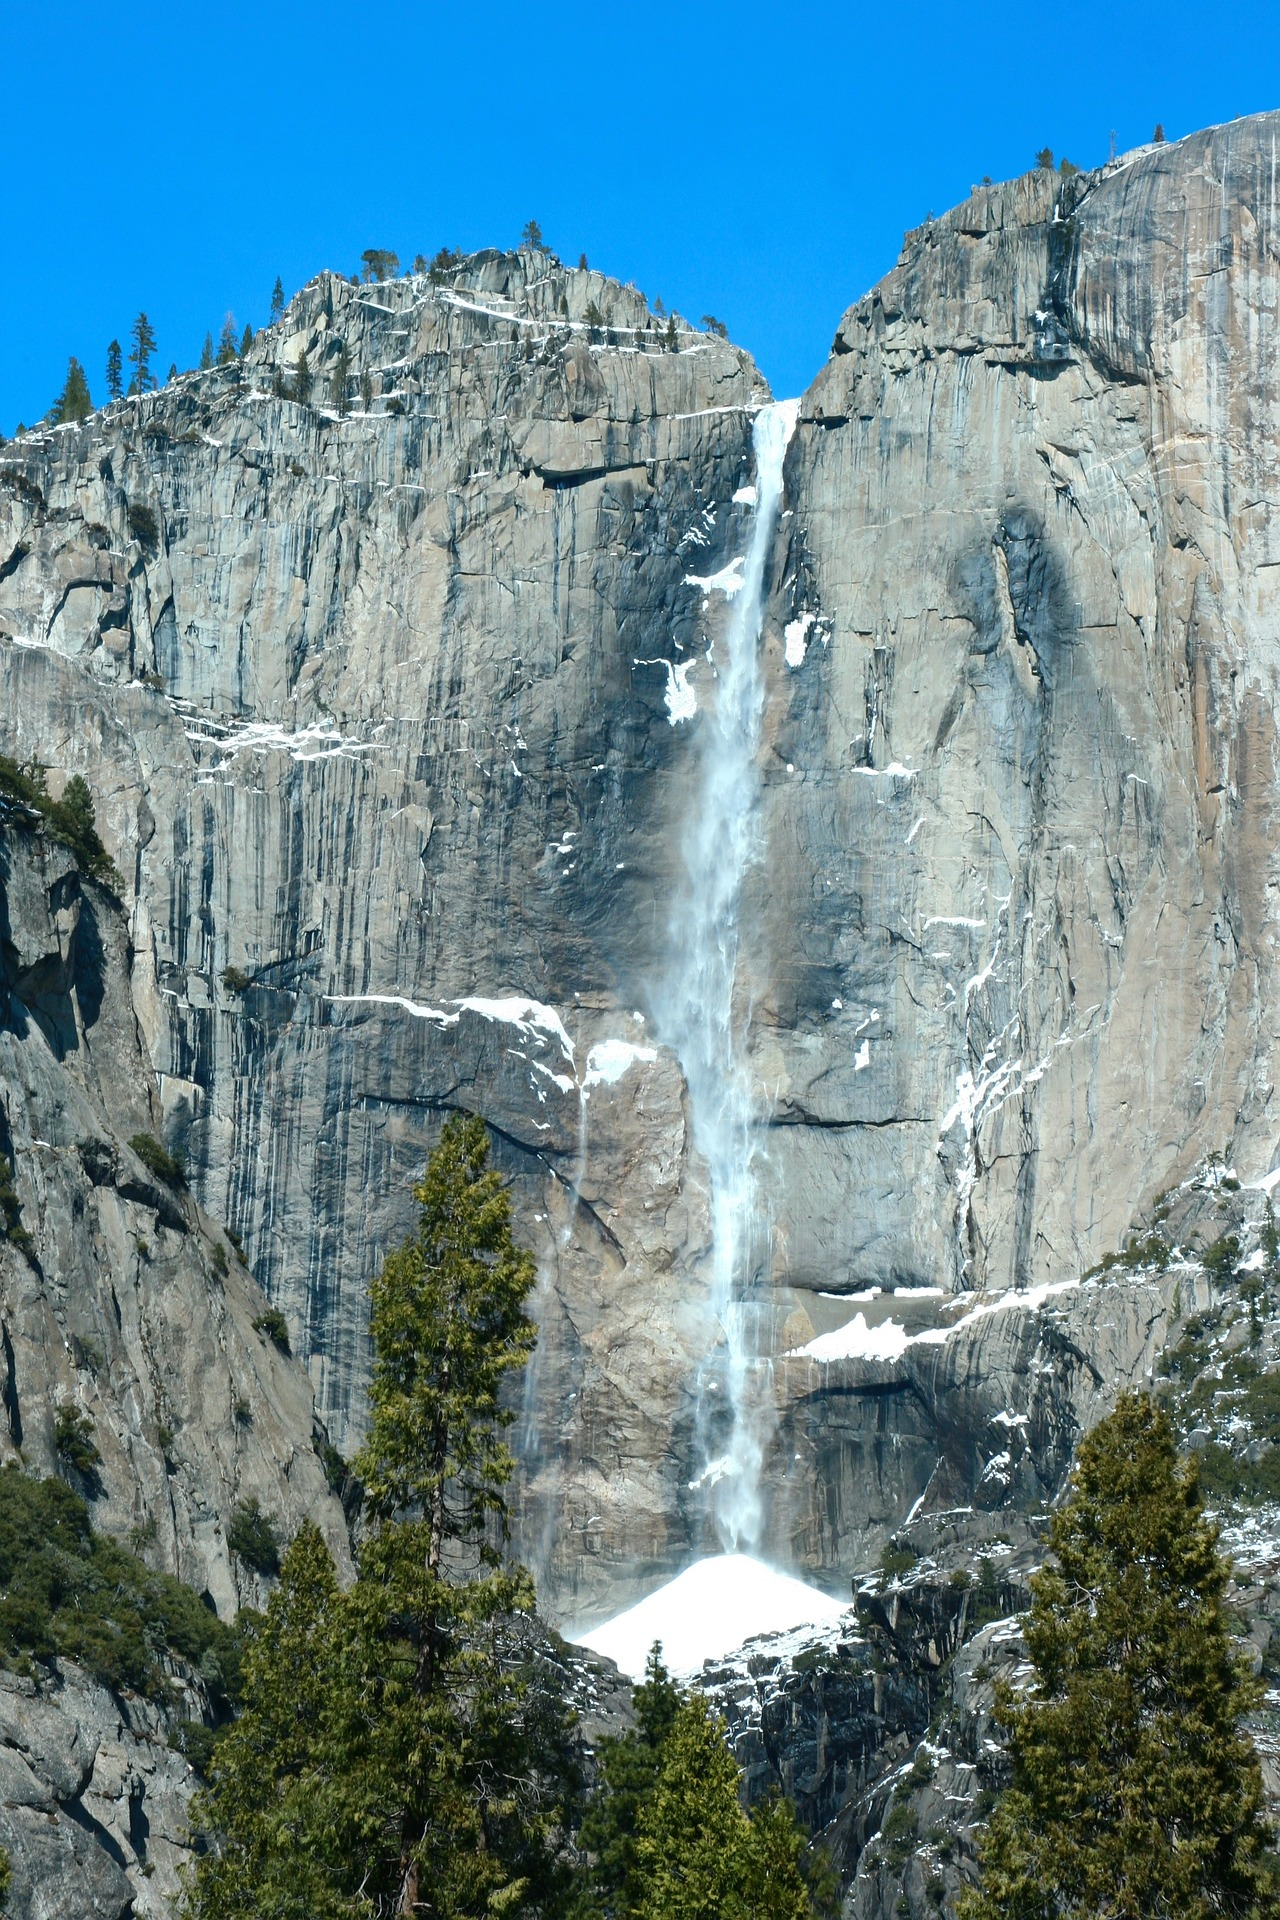 Yosemite Falls in Yosemite National Park in California, USA